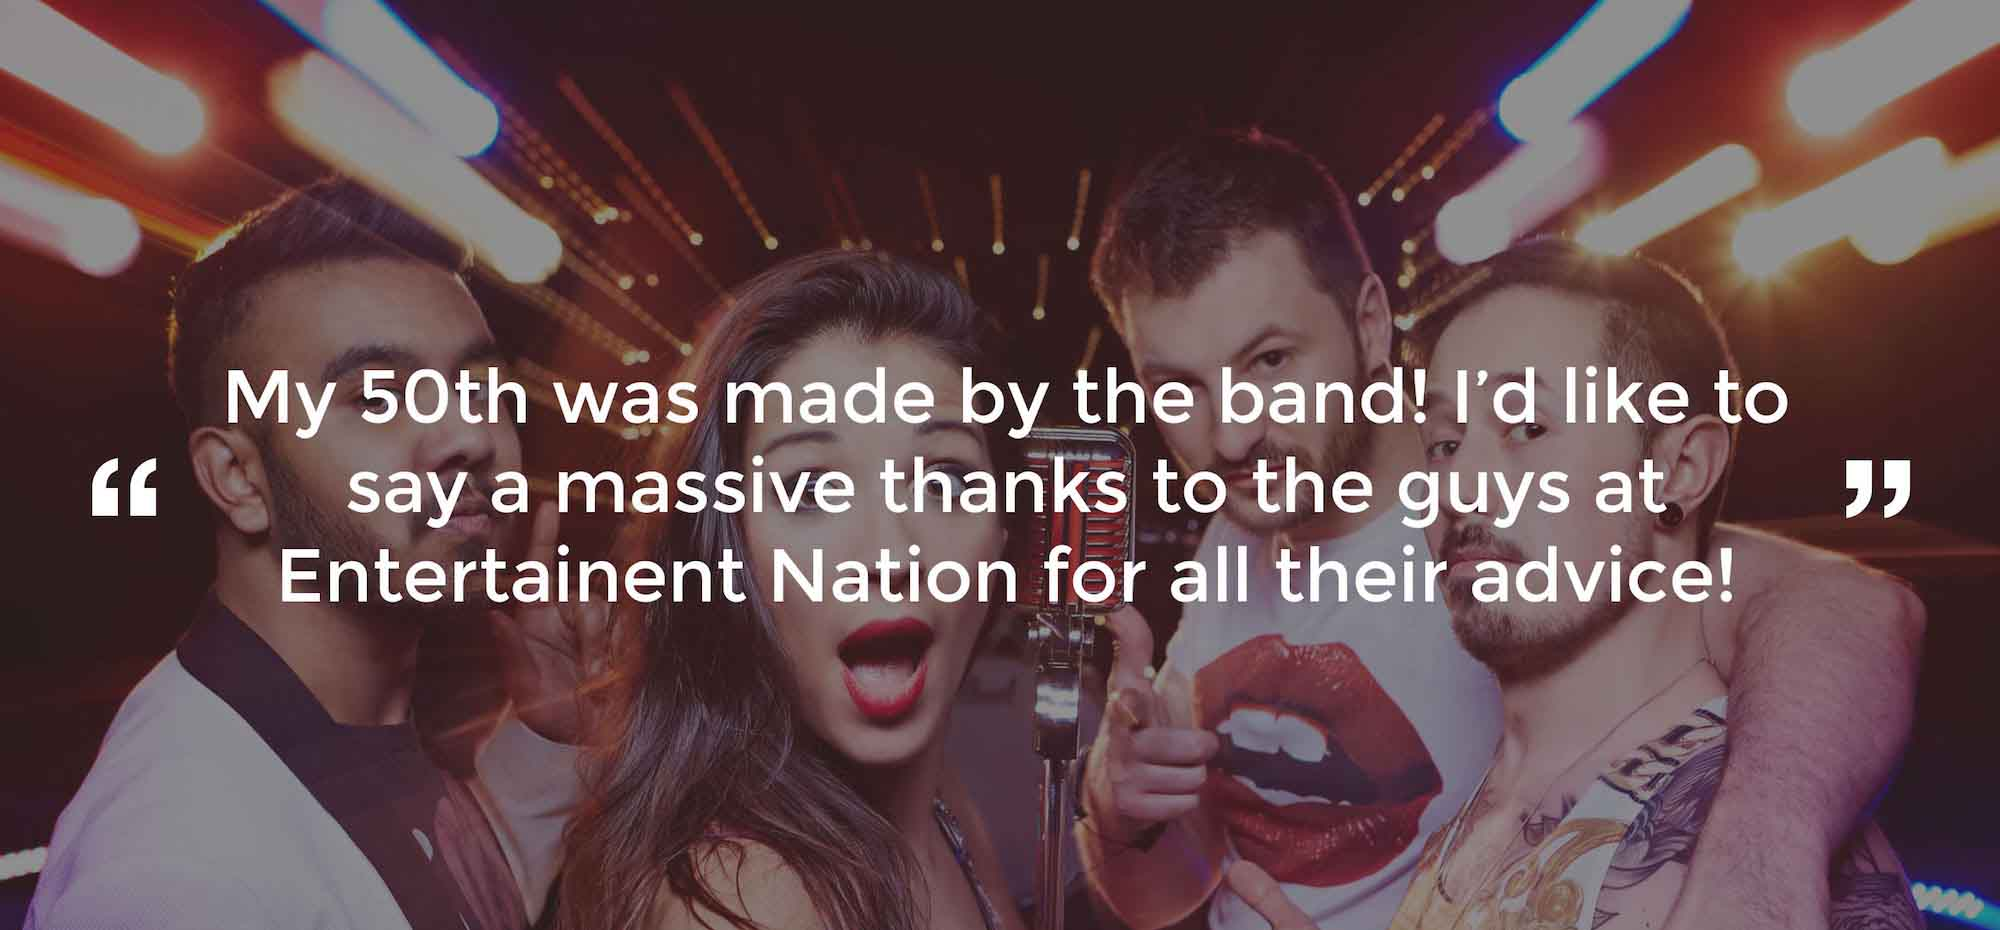 Client Review of a Party Band West Yorkshire